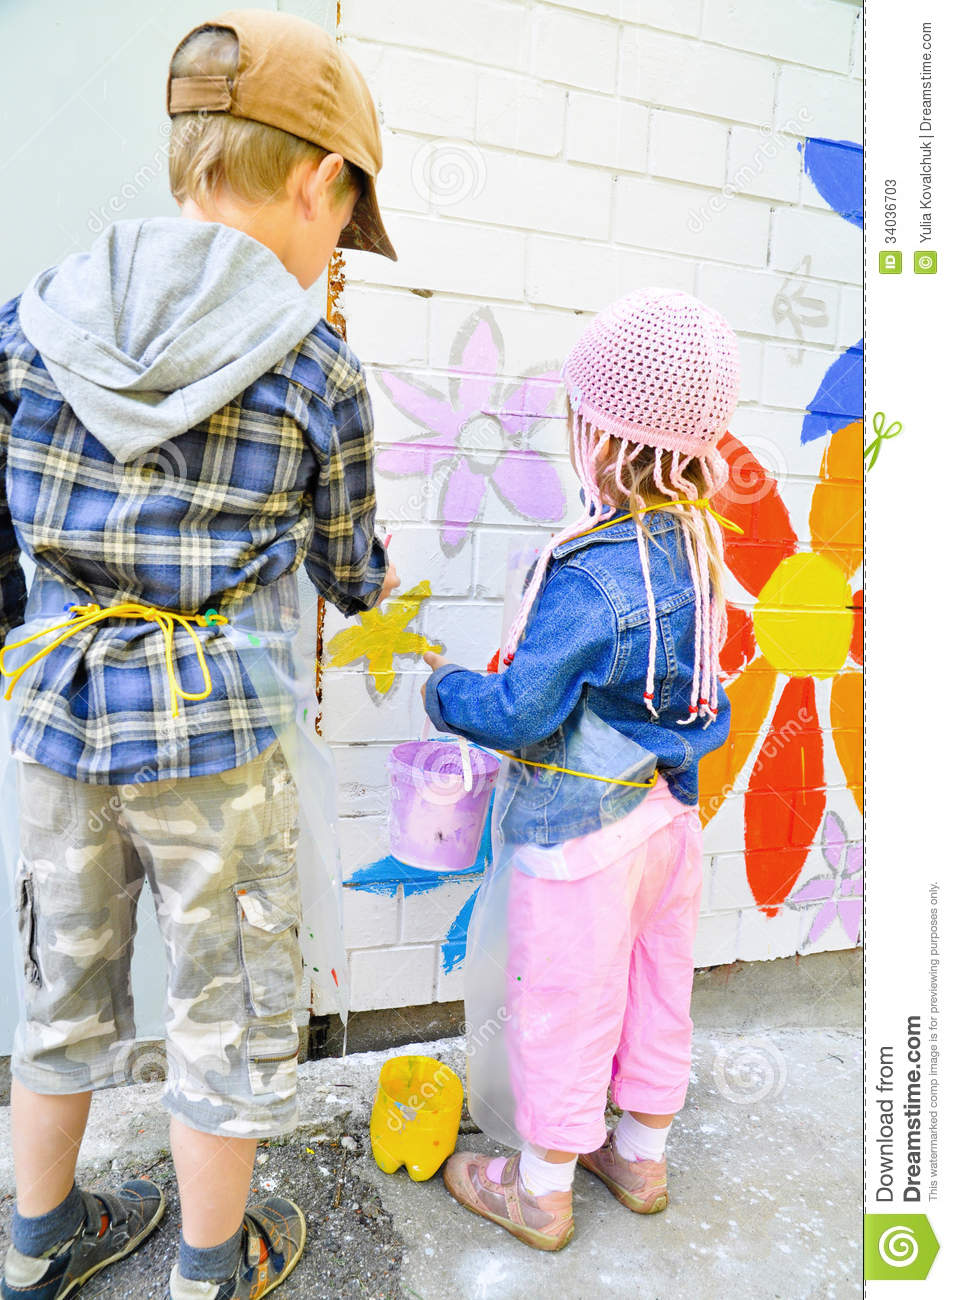 Classroom Painting Ideas ~ Children drawing graffiti stock image of concepts